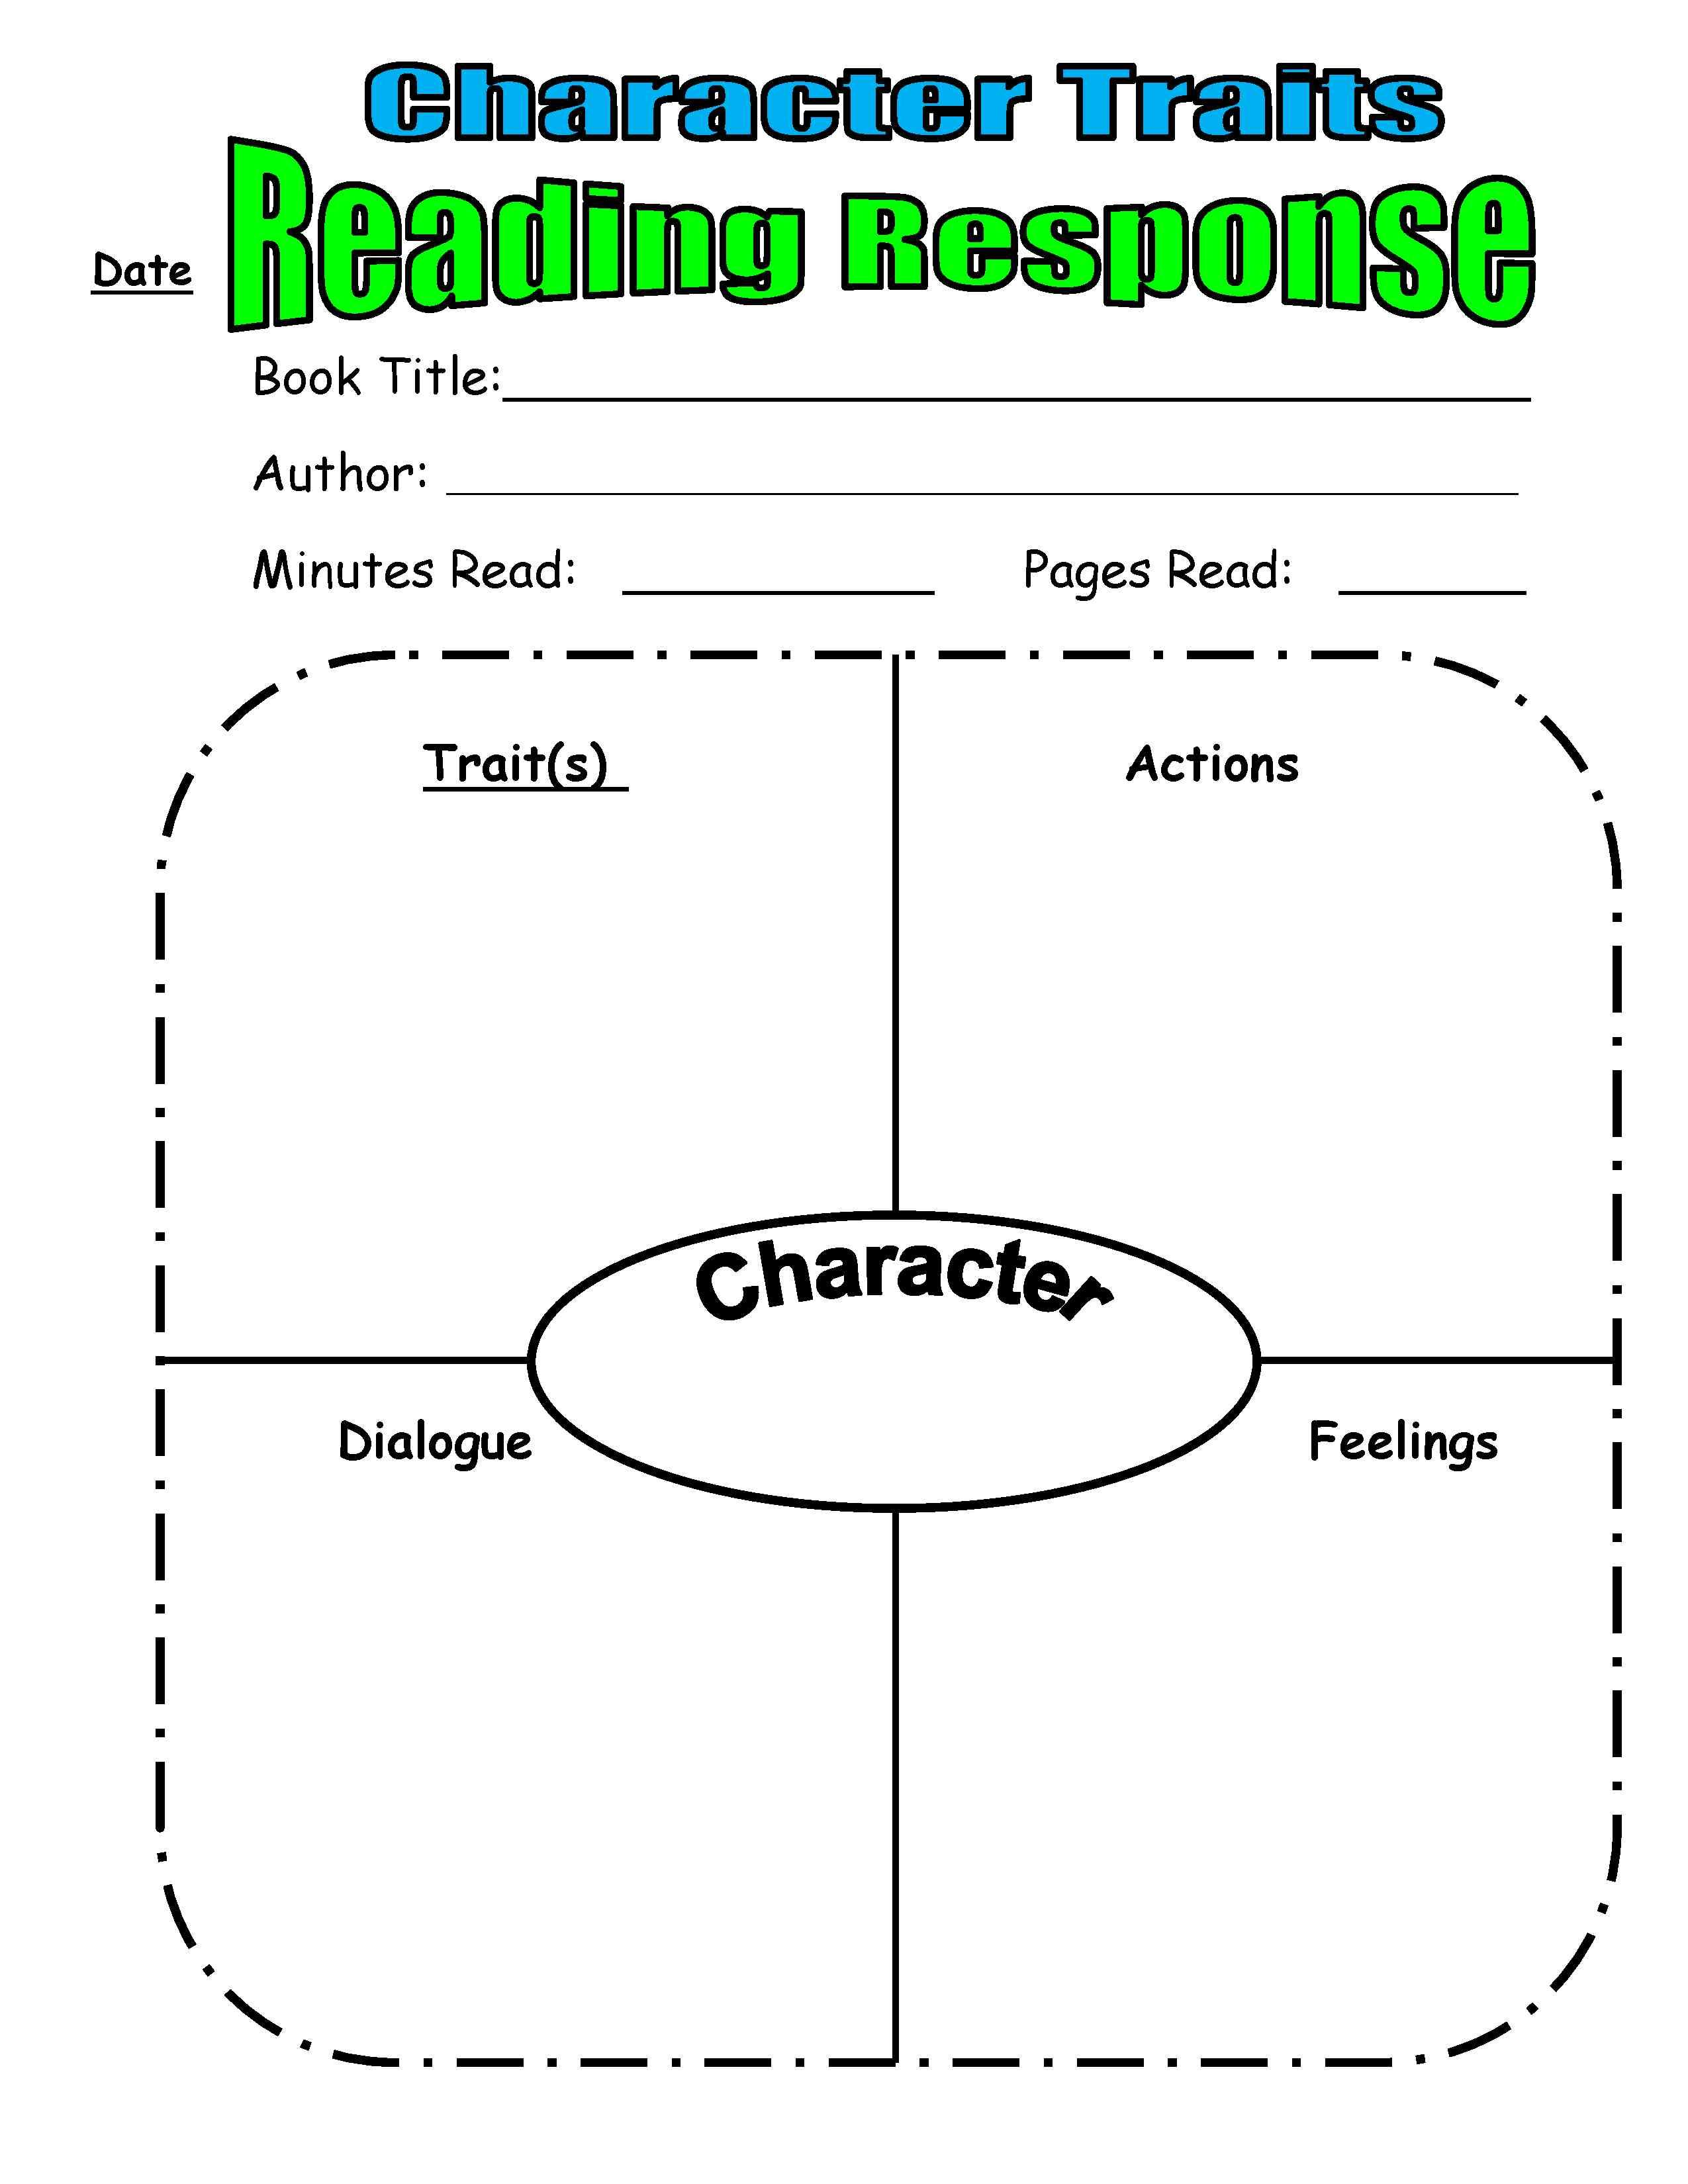 medium resolution of Teaching Character Traits in Reader's Workshop   Scholastic.com   Teaching character  traits